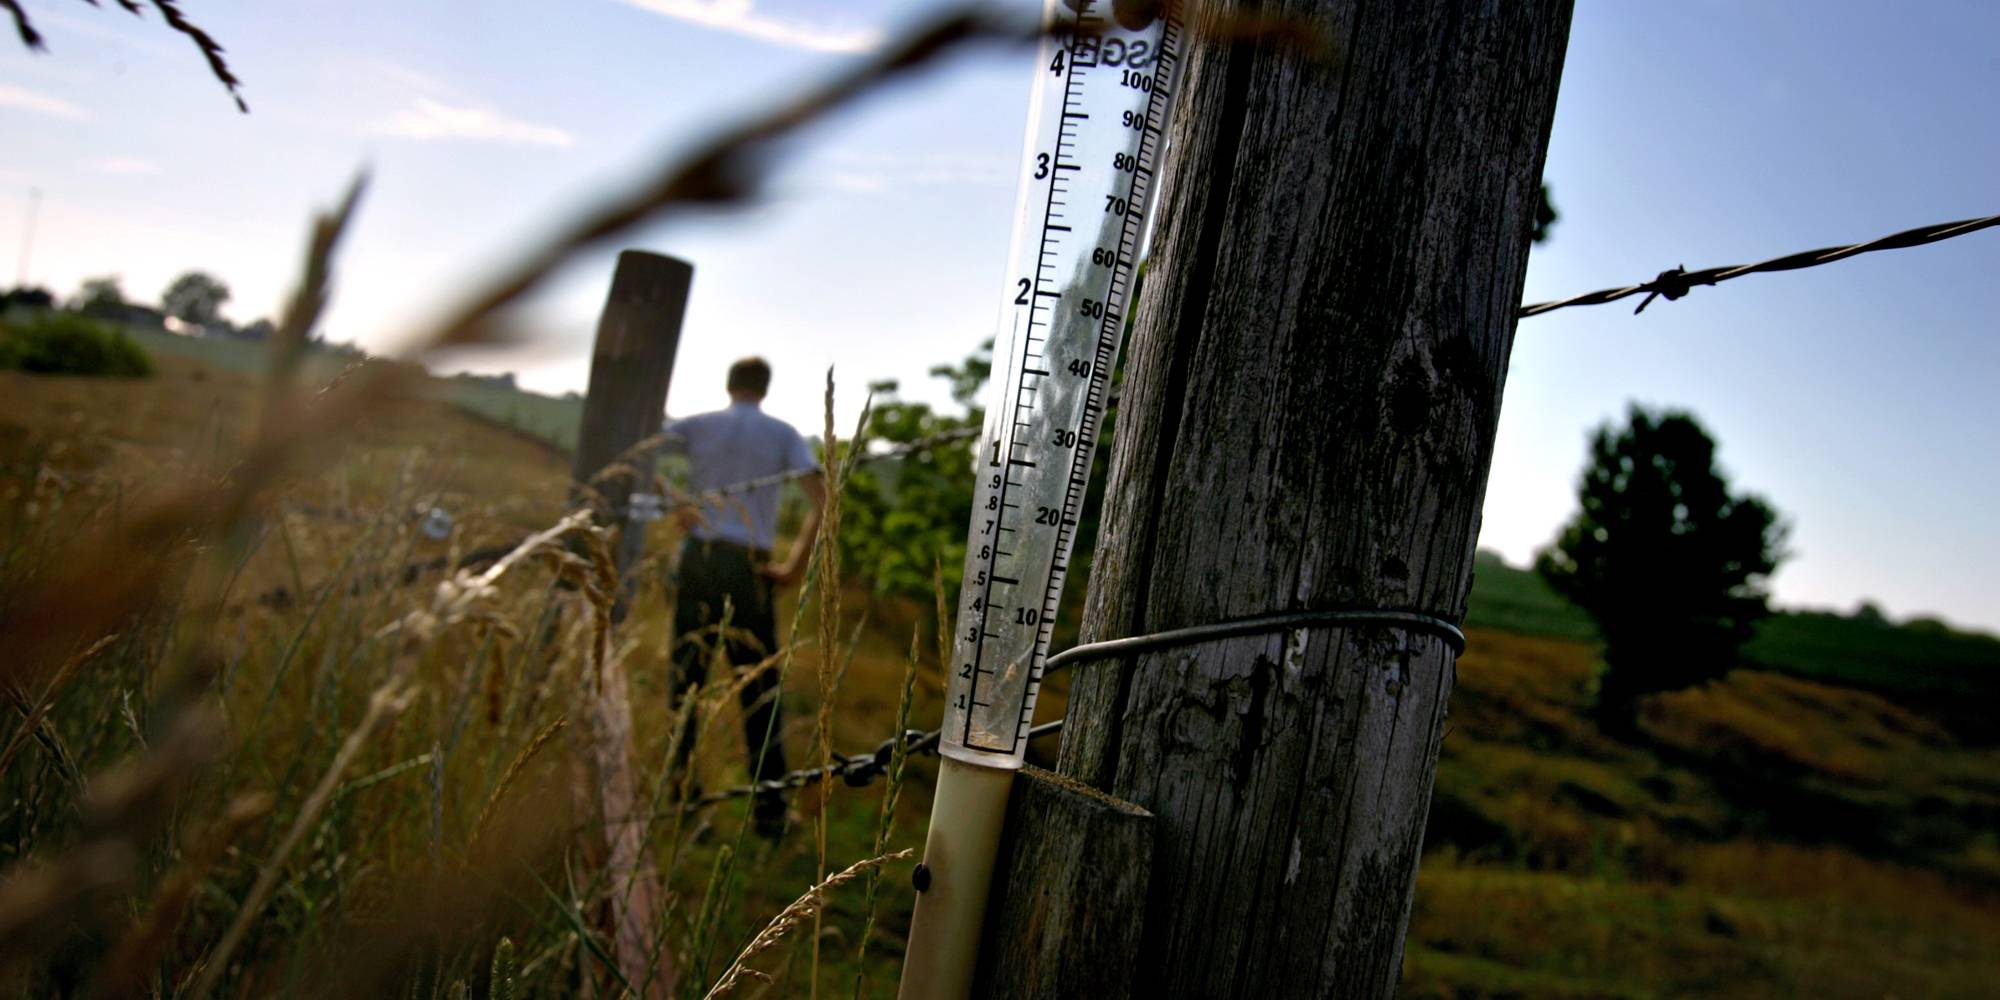 An empty rain gauge sits on a fence post on an Illinois farm.